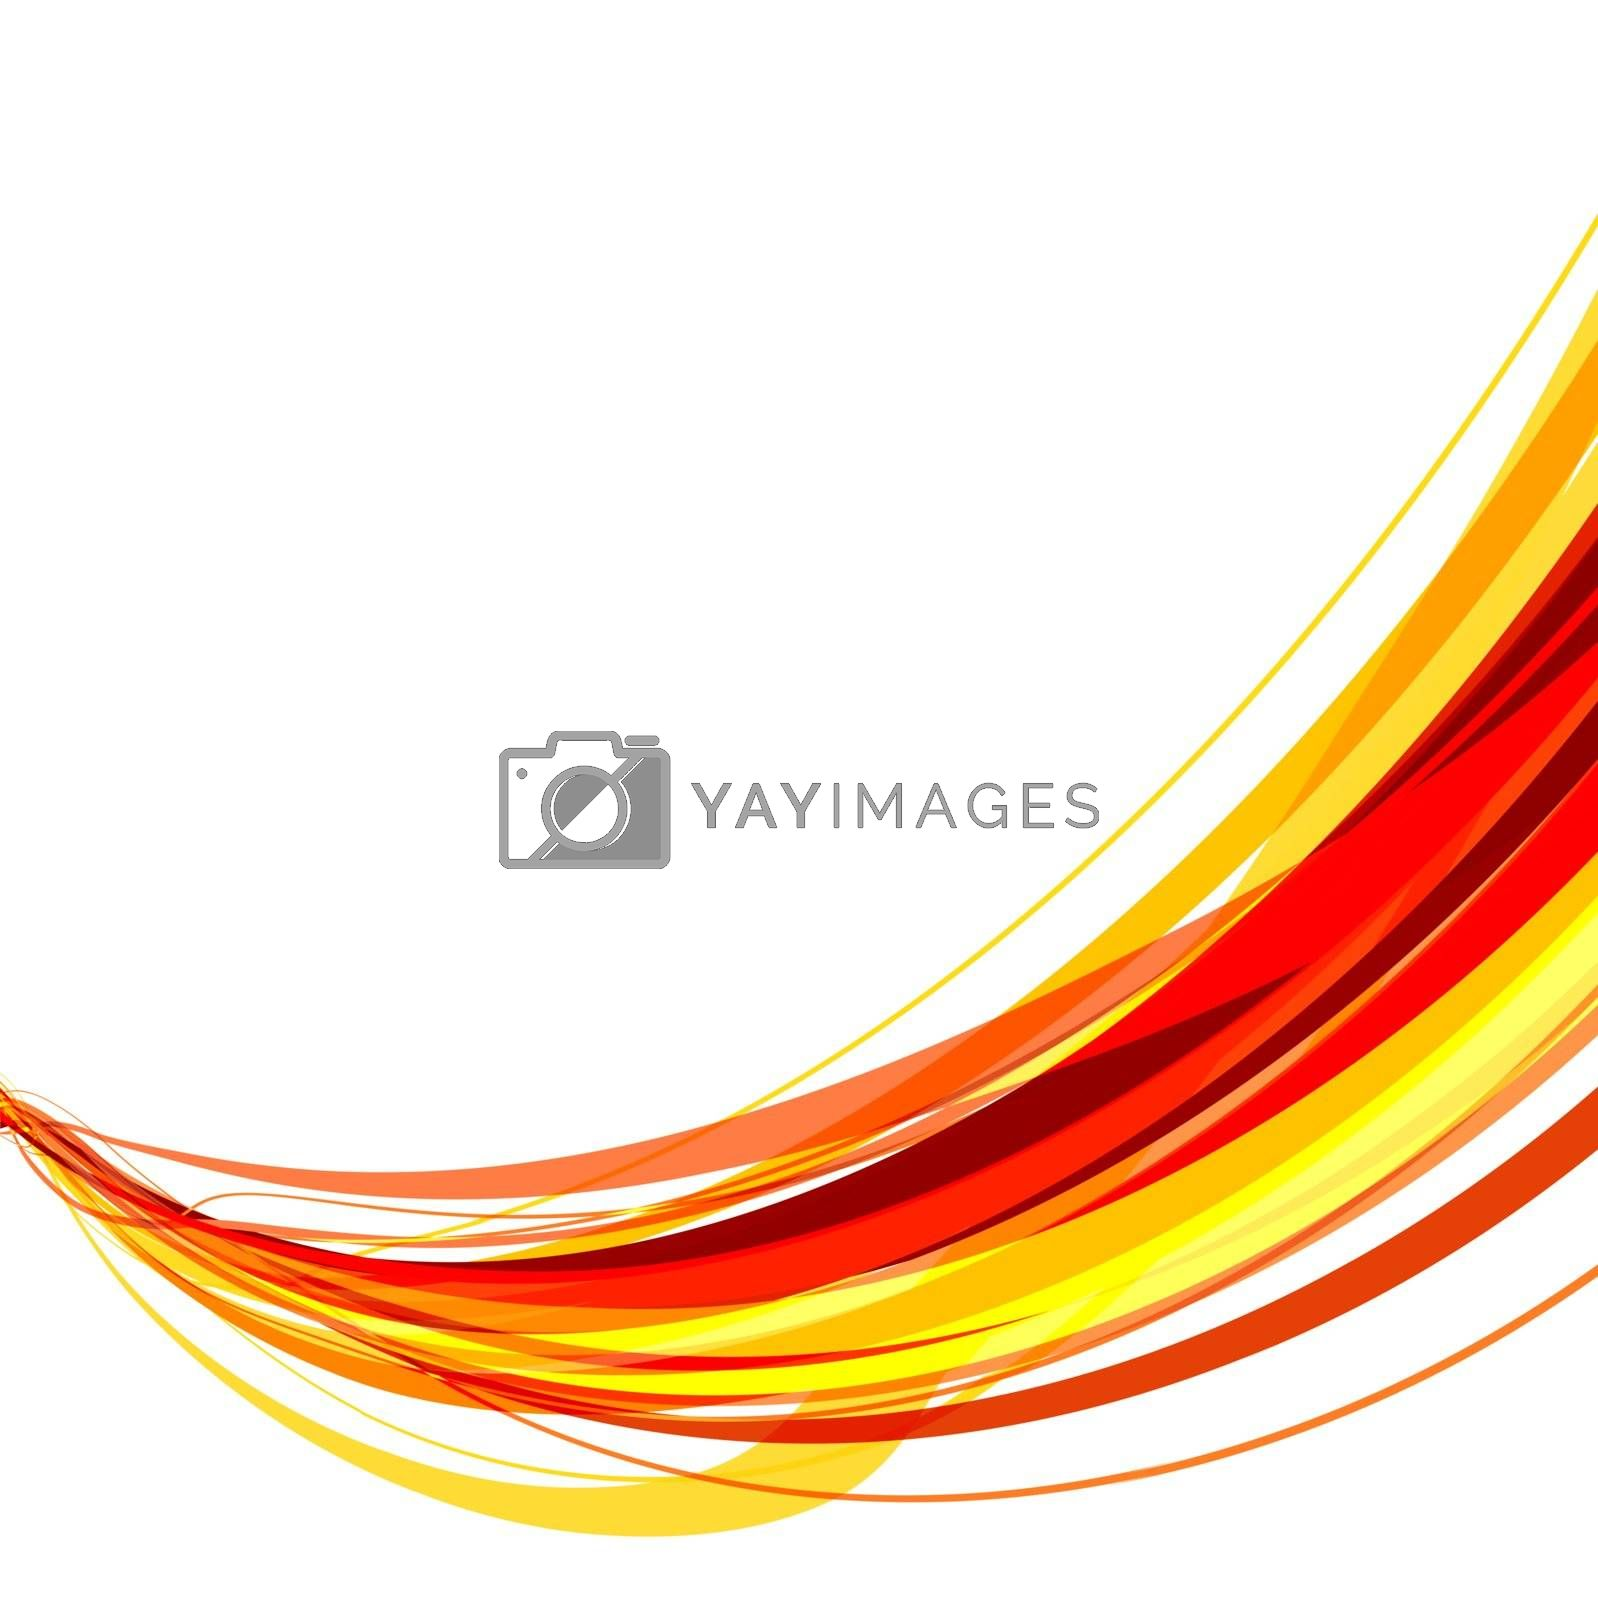 Abstract vector illustration of red and yellow ribbons tangled together